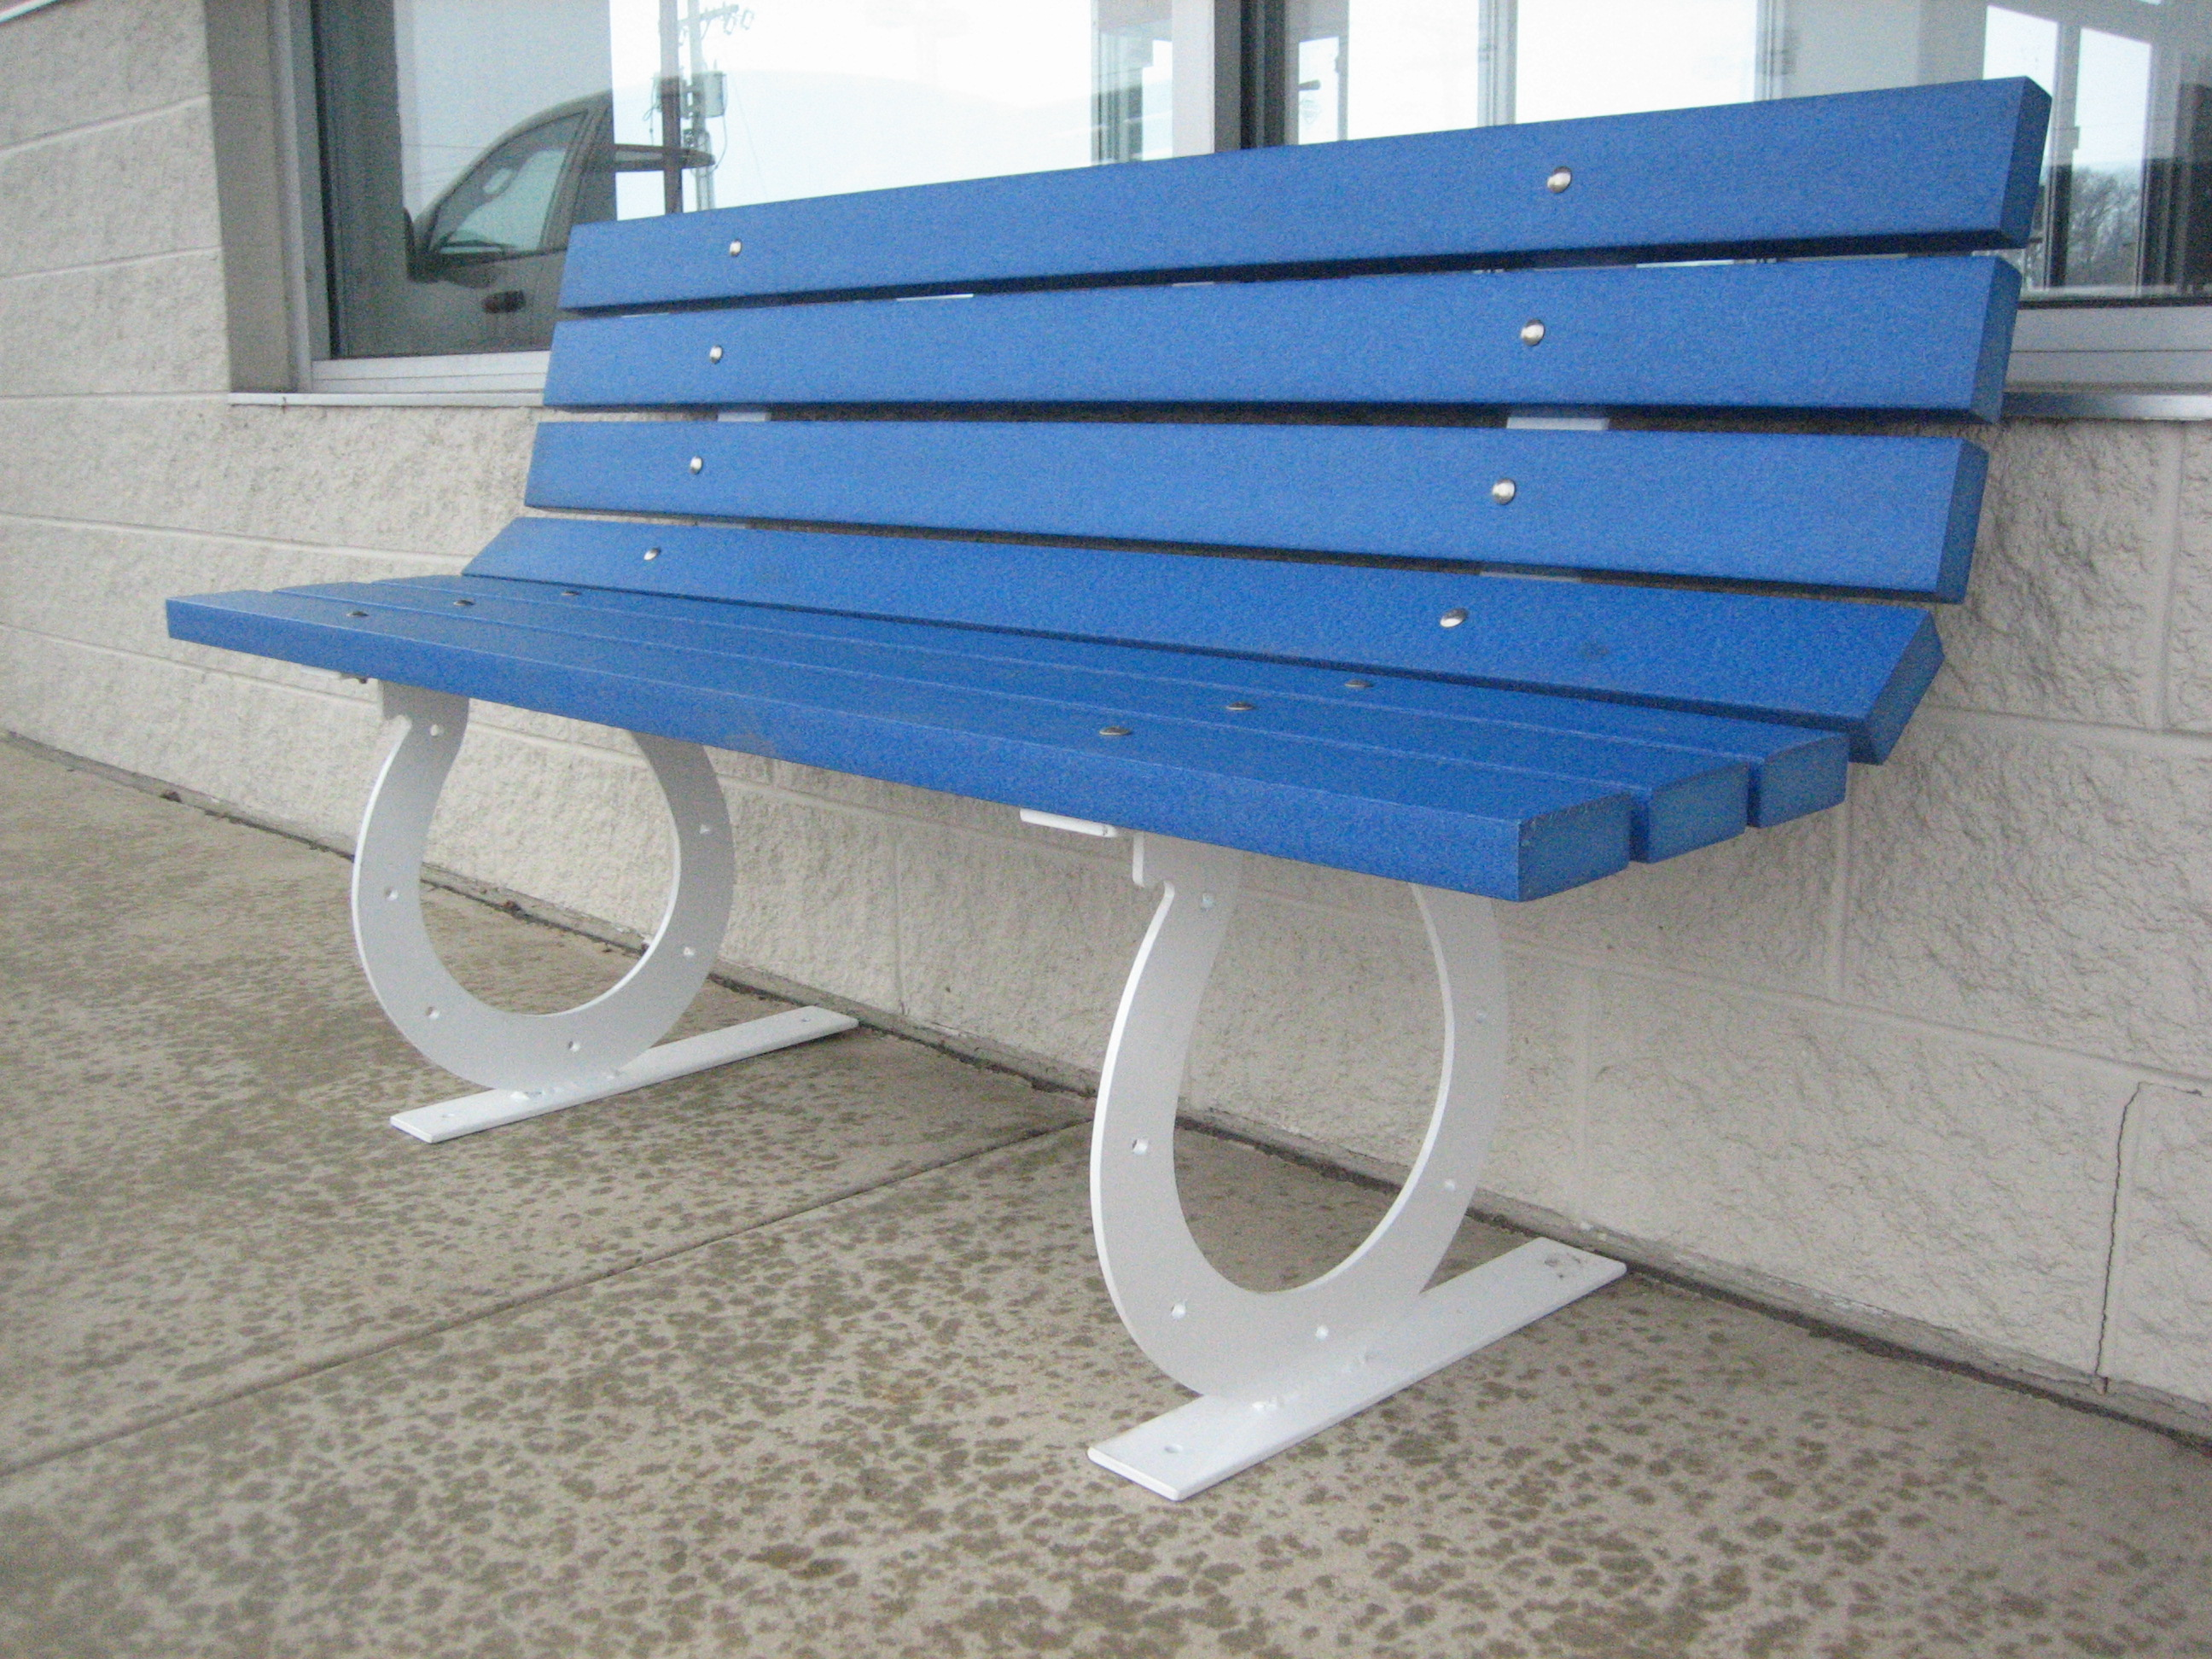 Horseshoe Frame Park Bench